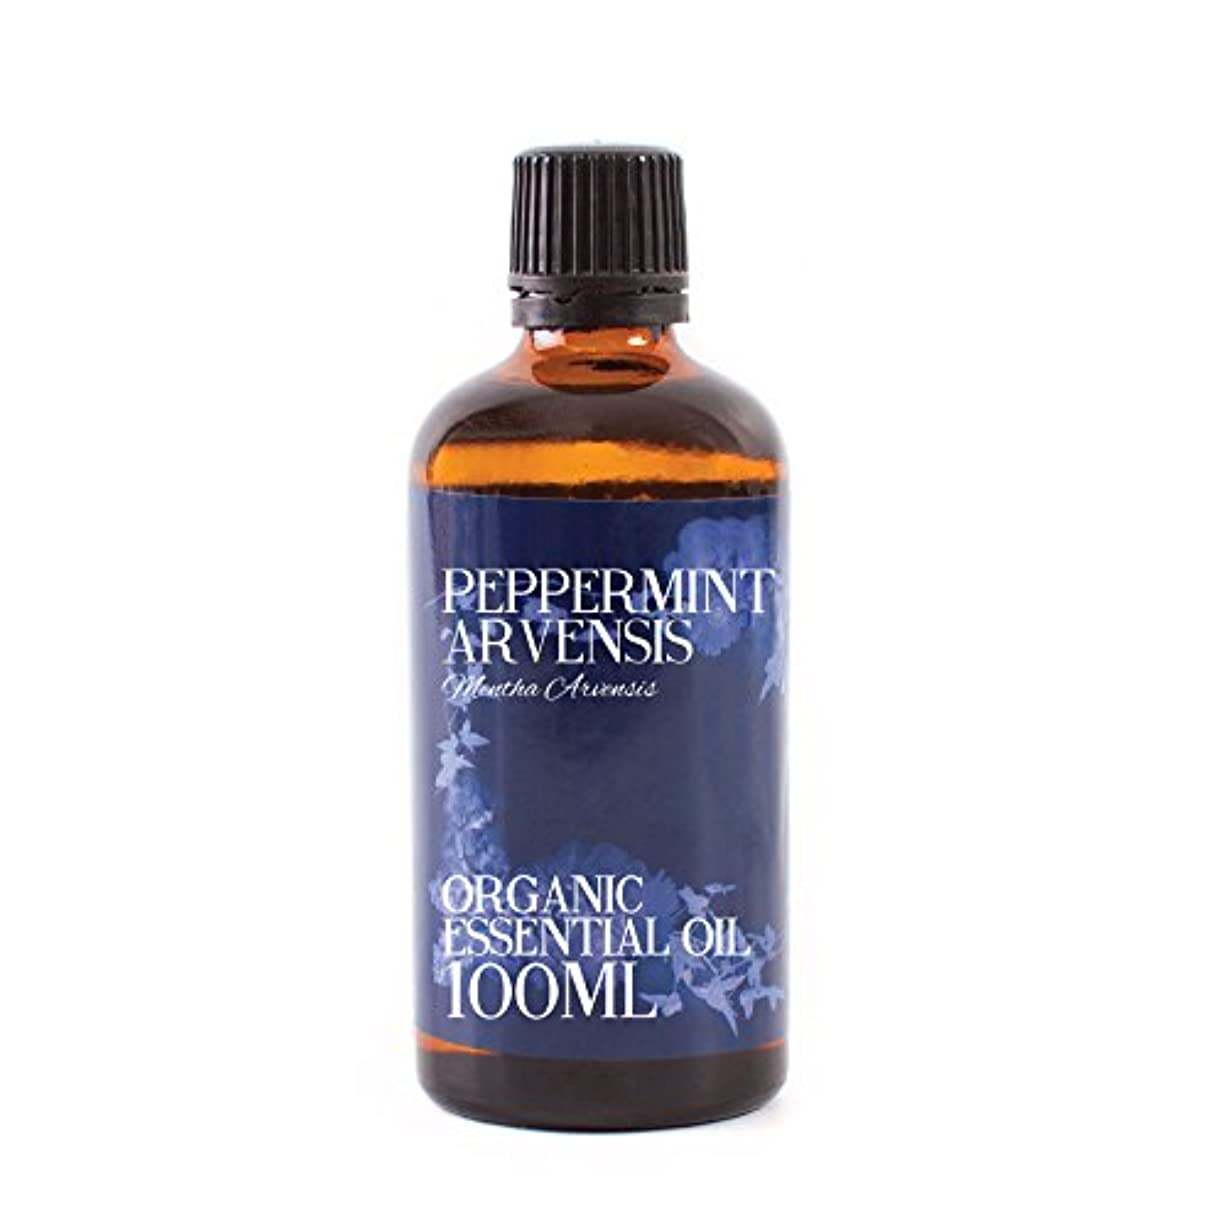 Mystic Moments | Peppermint Arvensis Organic Essential Oil - 100ml - 100% Pure